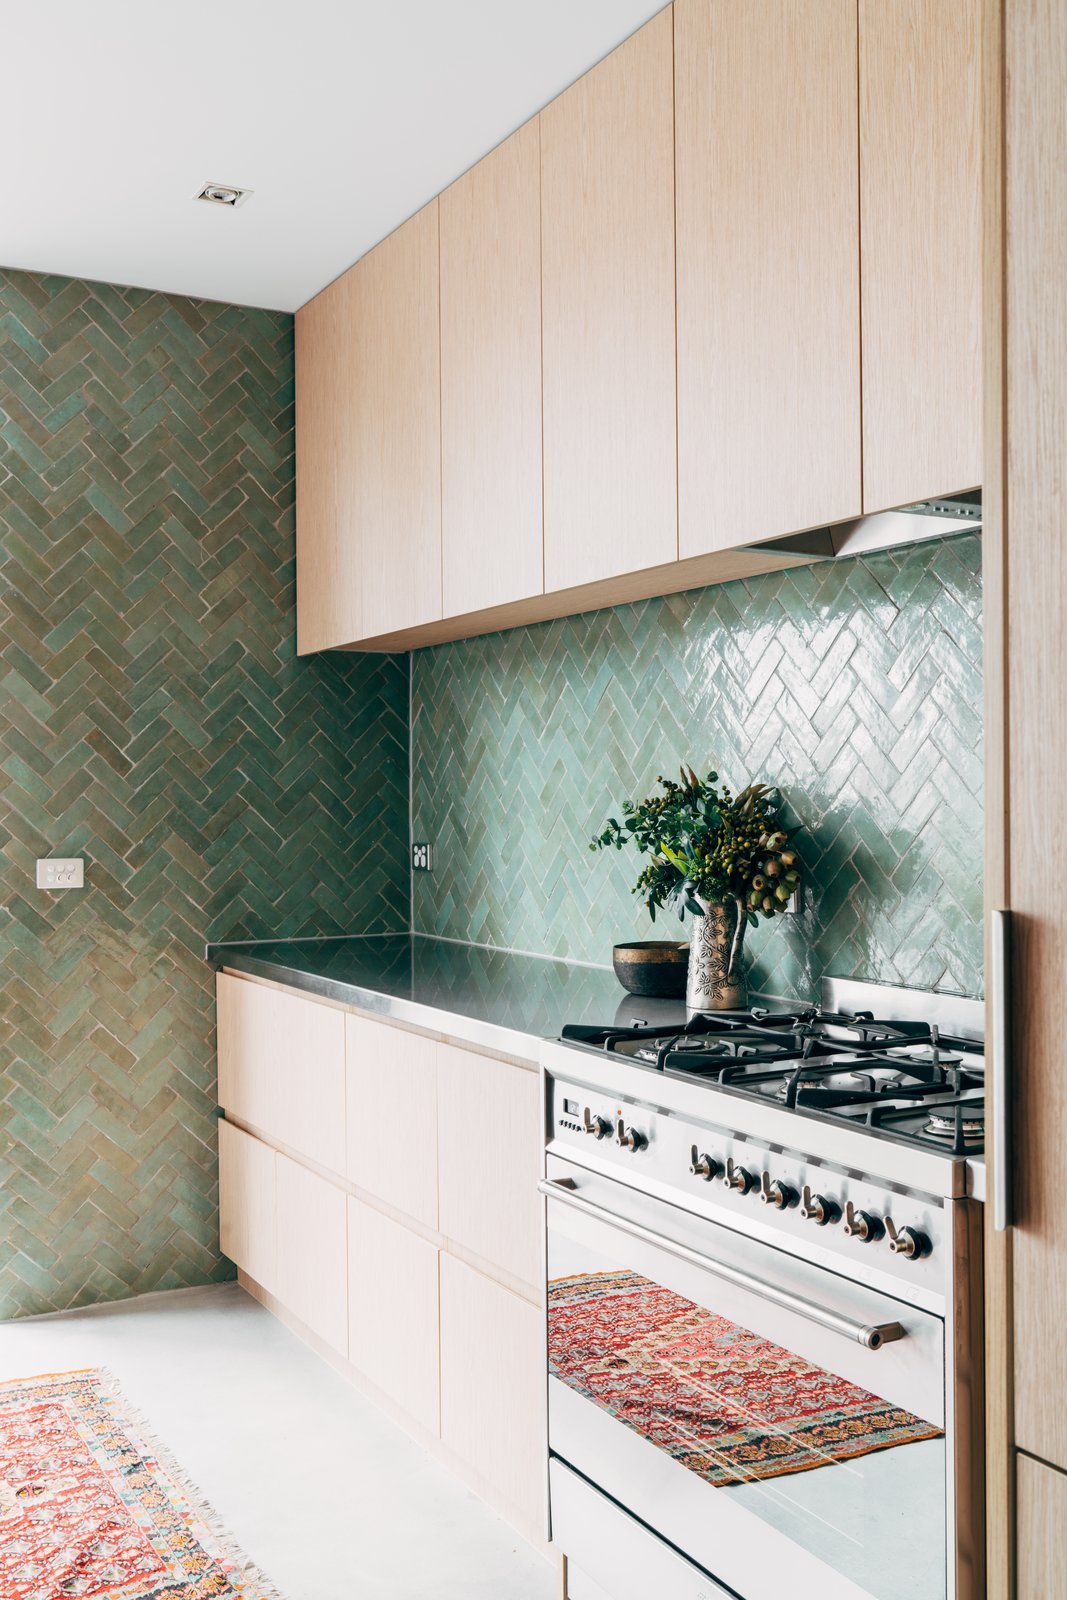 - 5 Artisan Tile Companies That Can Elevate Your Home - Dwell